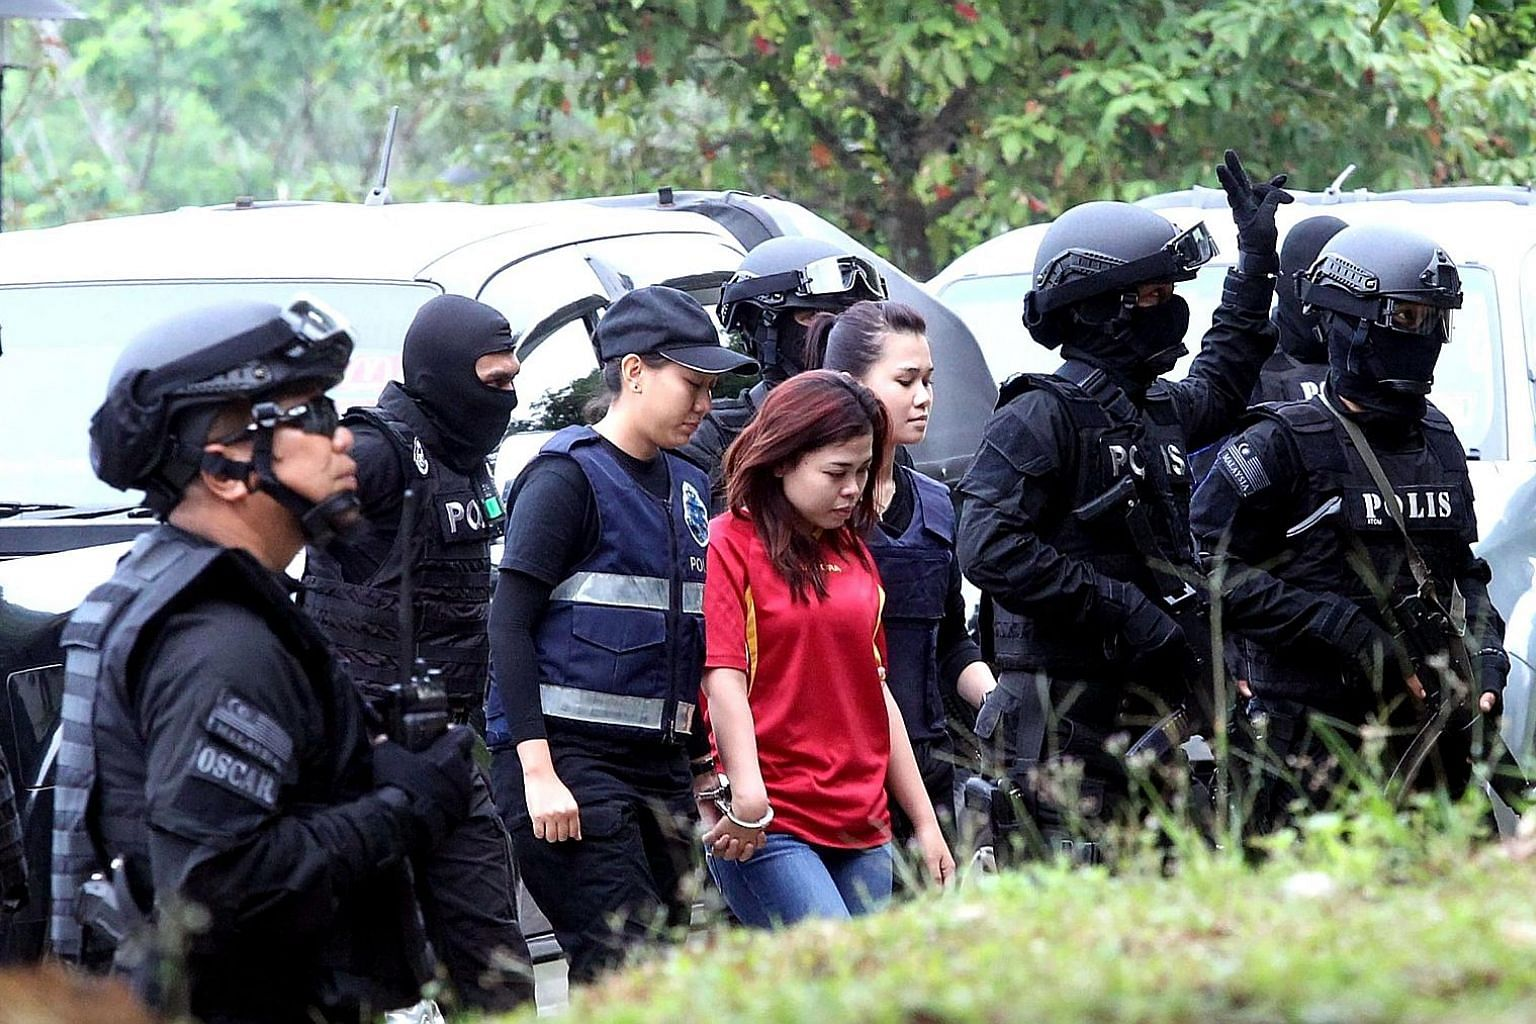 Indonesian suspect Siti Aisyah on her way to court in Sepang yesterday, where she and Vietnamese suspect Doan Thi Huong were charged with Mr Kim Jong Nam's murder.